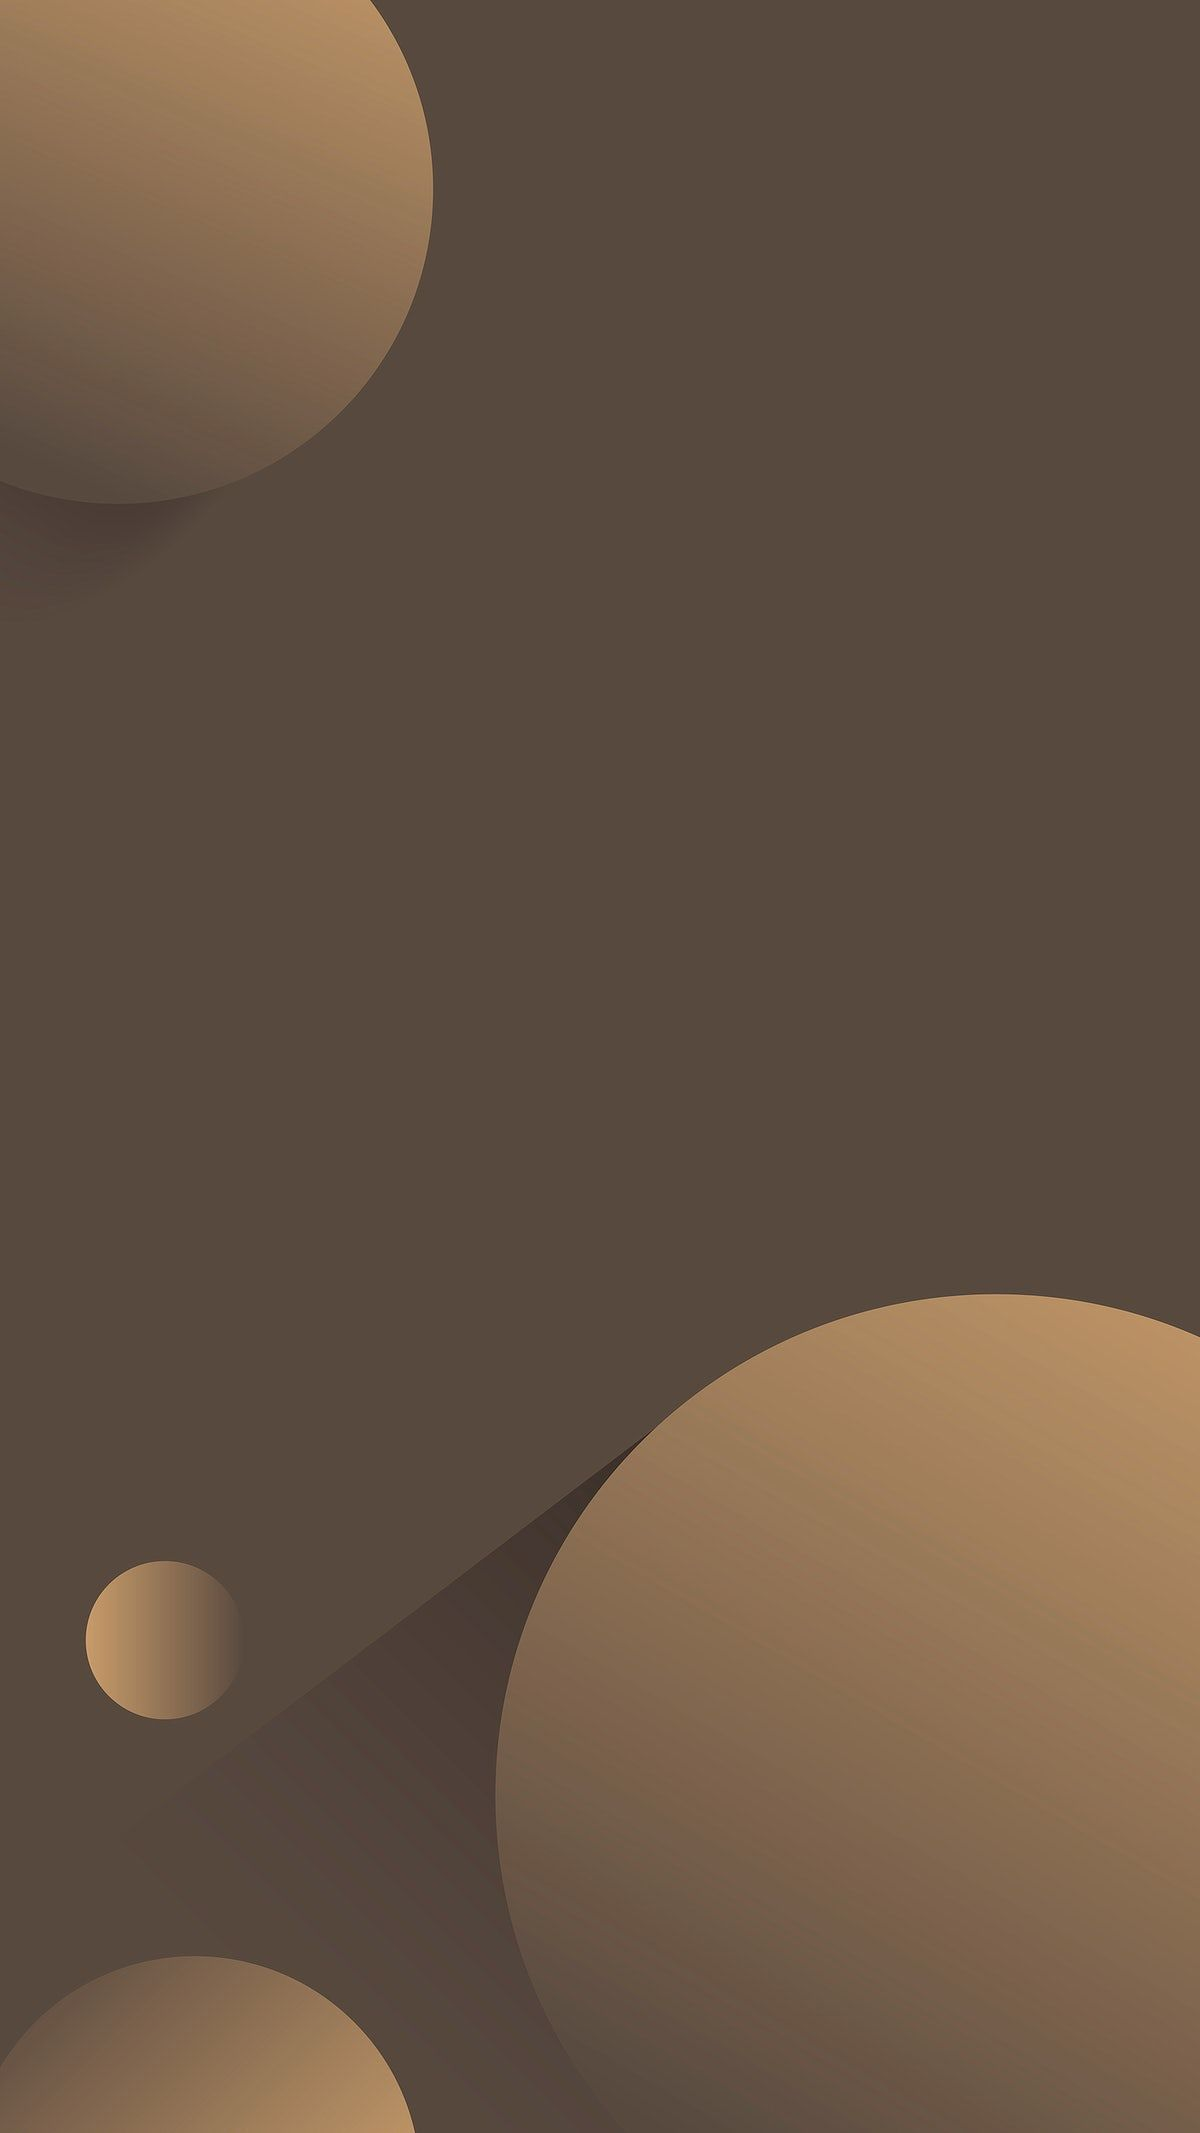 Download Free Vector Of Round Brown Abstract Background Vector About Abstract Background Abs In 2021 Abstract Backgrounds Color Wallpaper Iphone Texture Background Hd